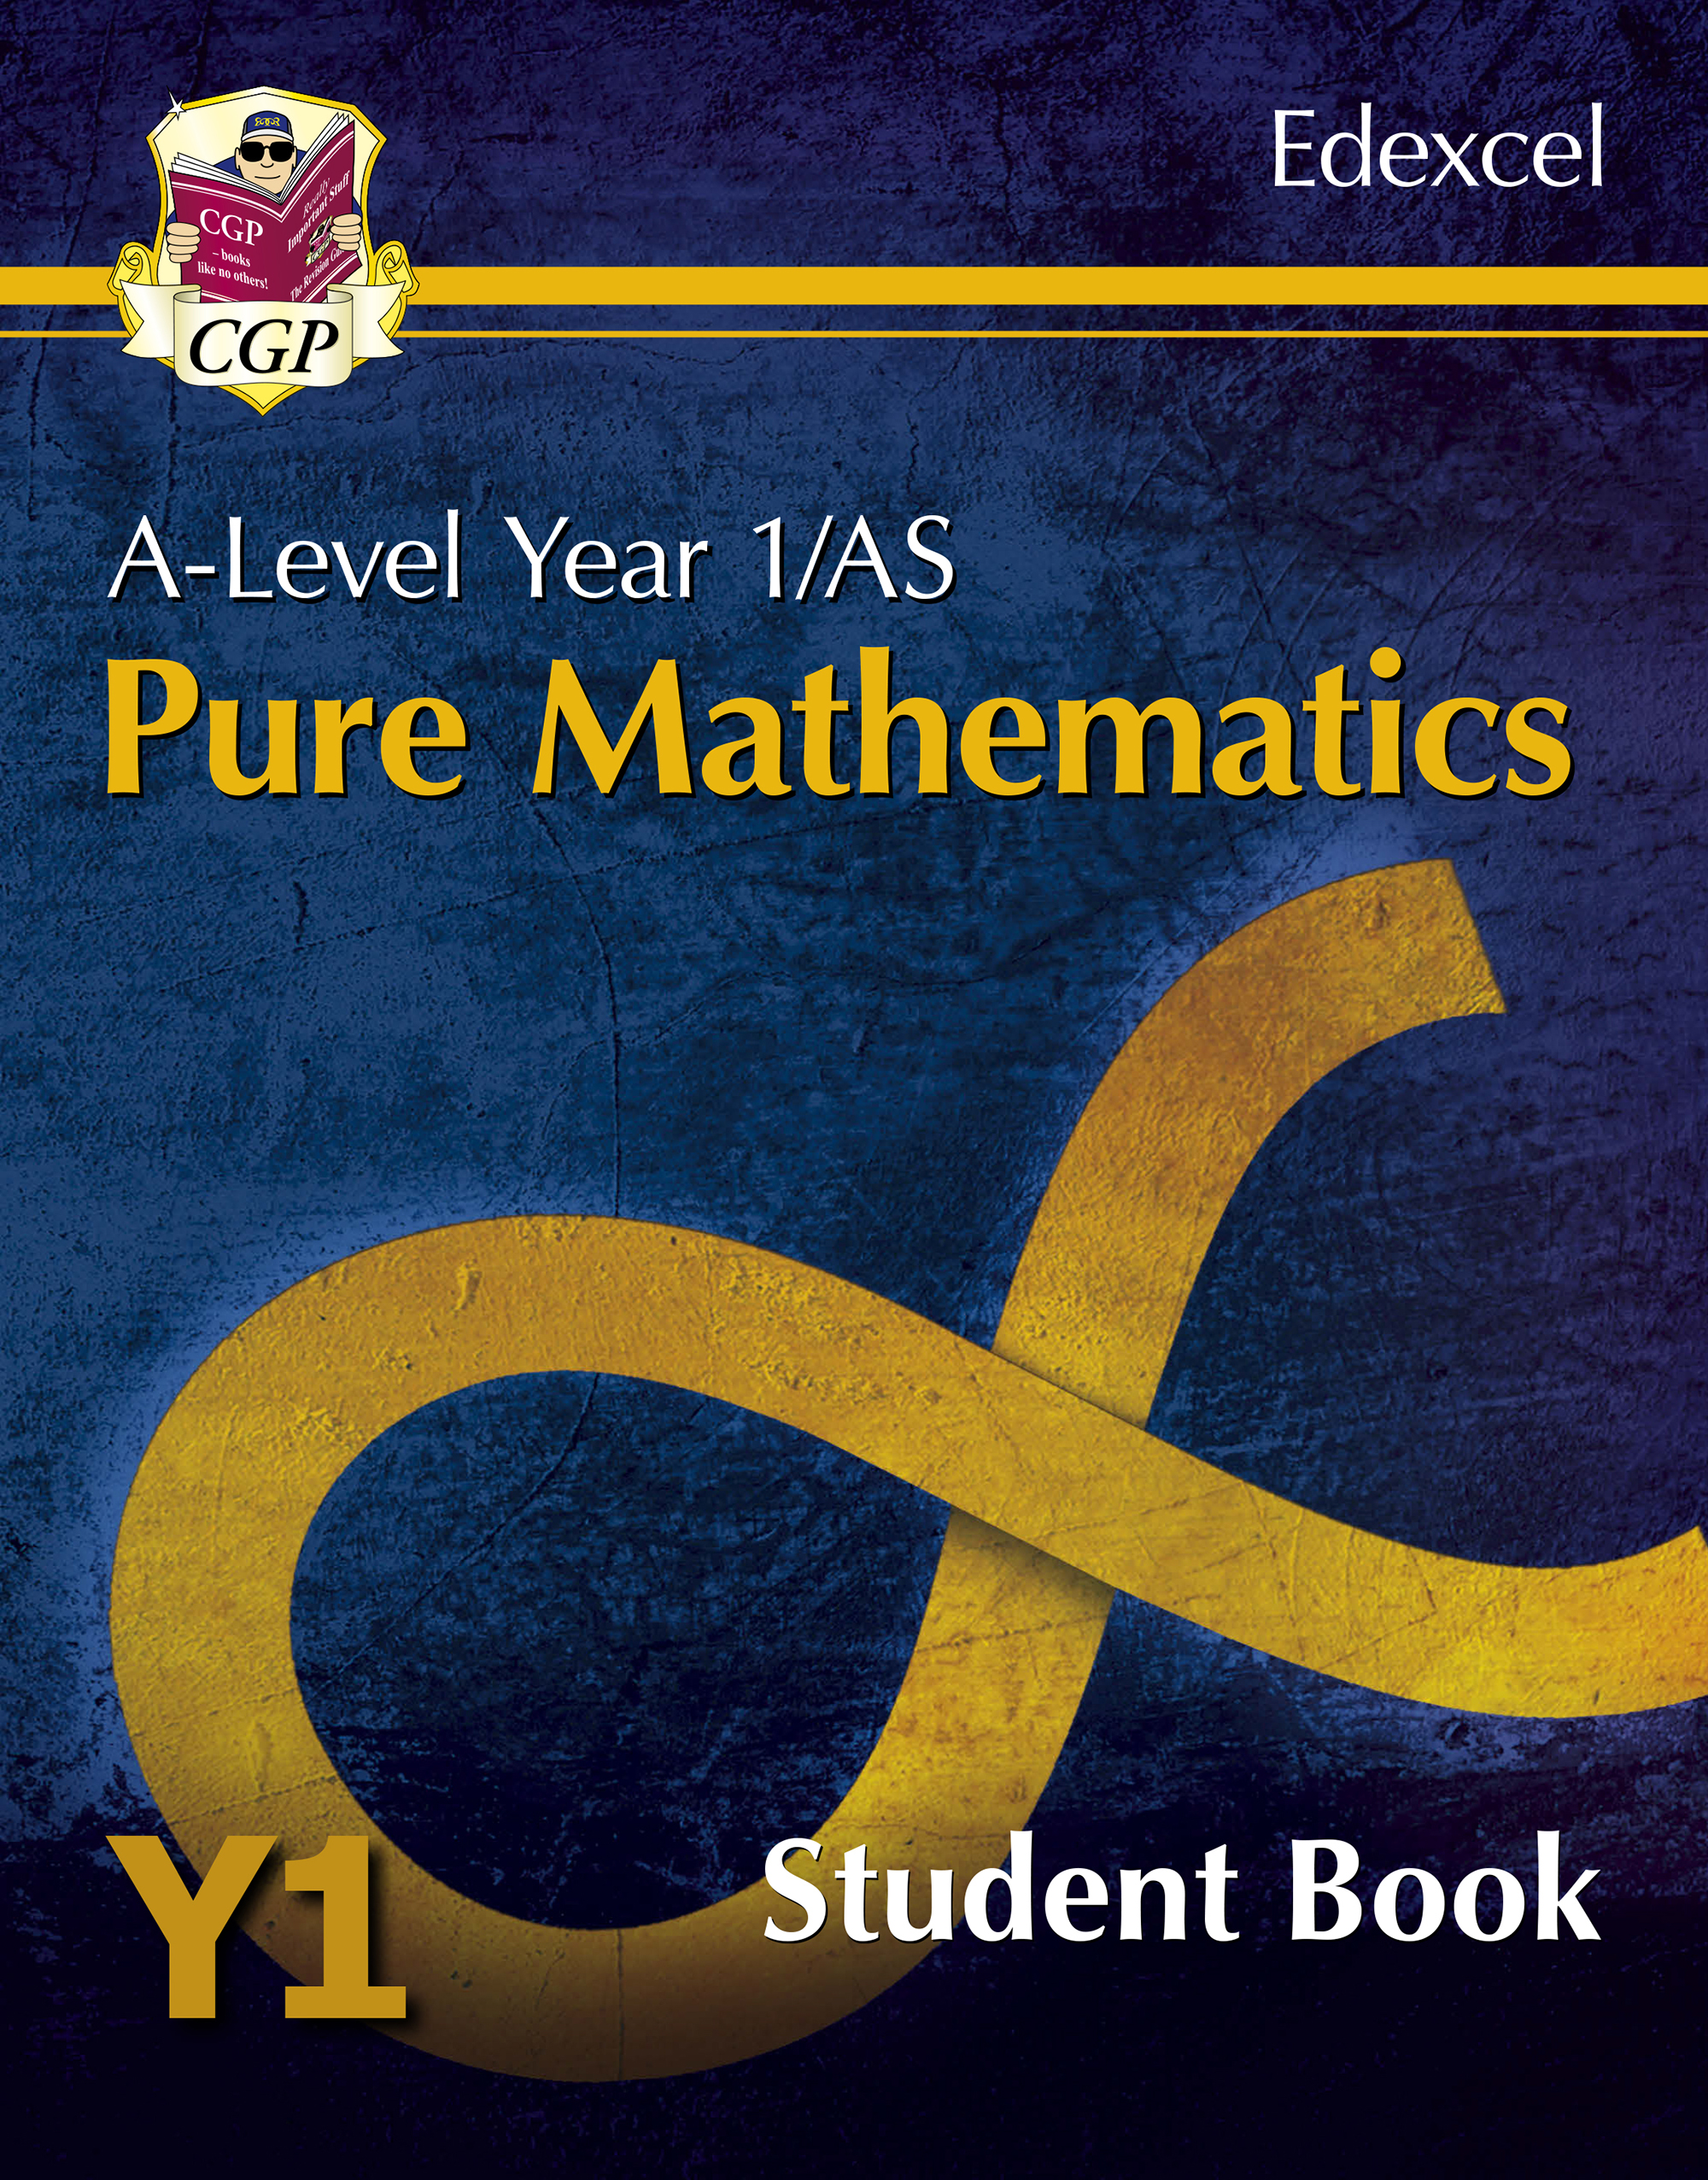 MEPMT51D - New A-Level Maths for Edexcel: Pure Mathematics - Year 1/AS Student Book Online Edition